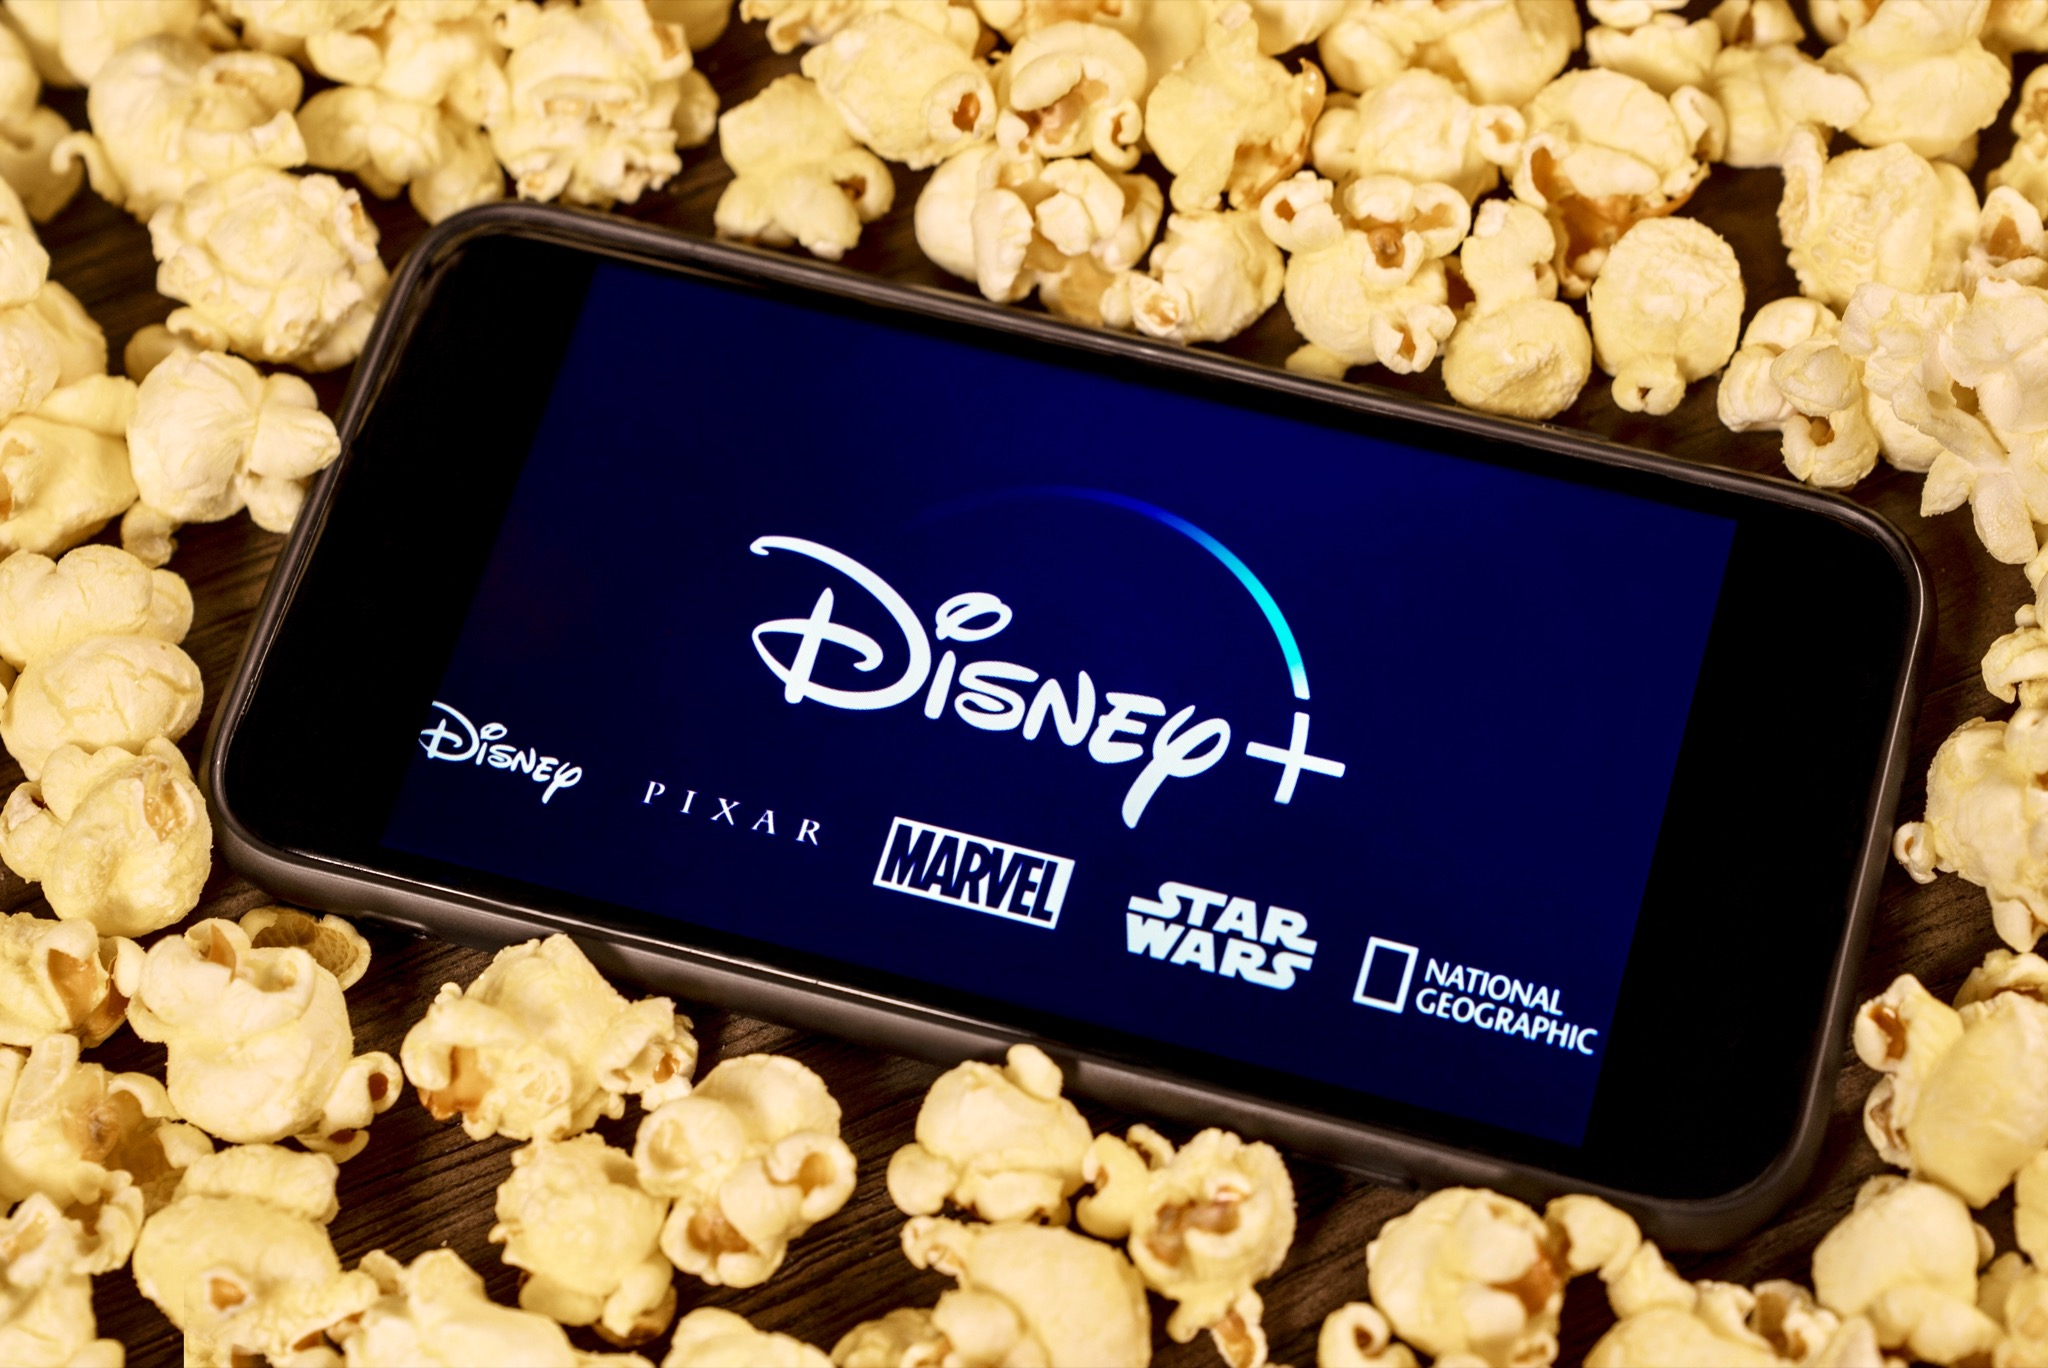 Disney+ Users Experiencing Error Messages, Glitches on Launch Day